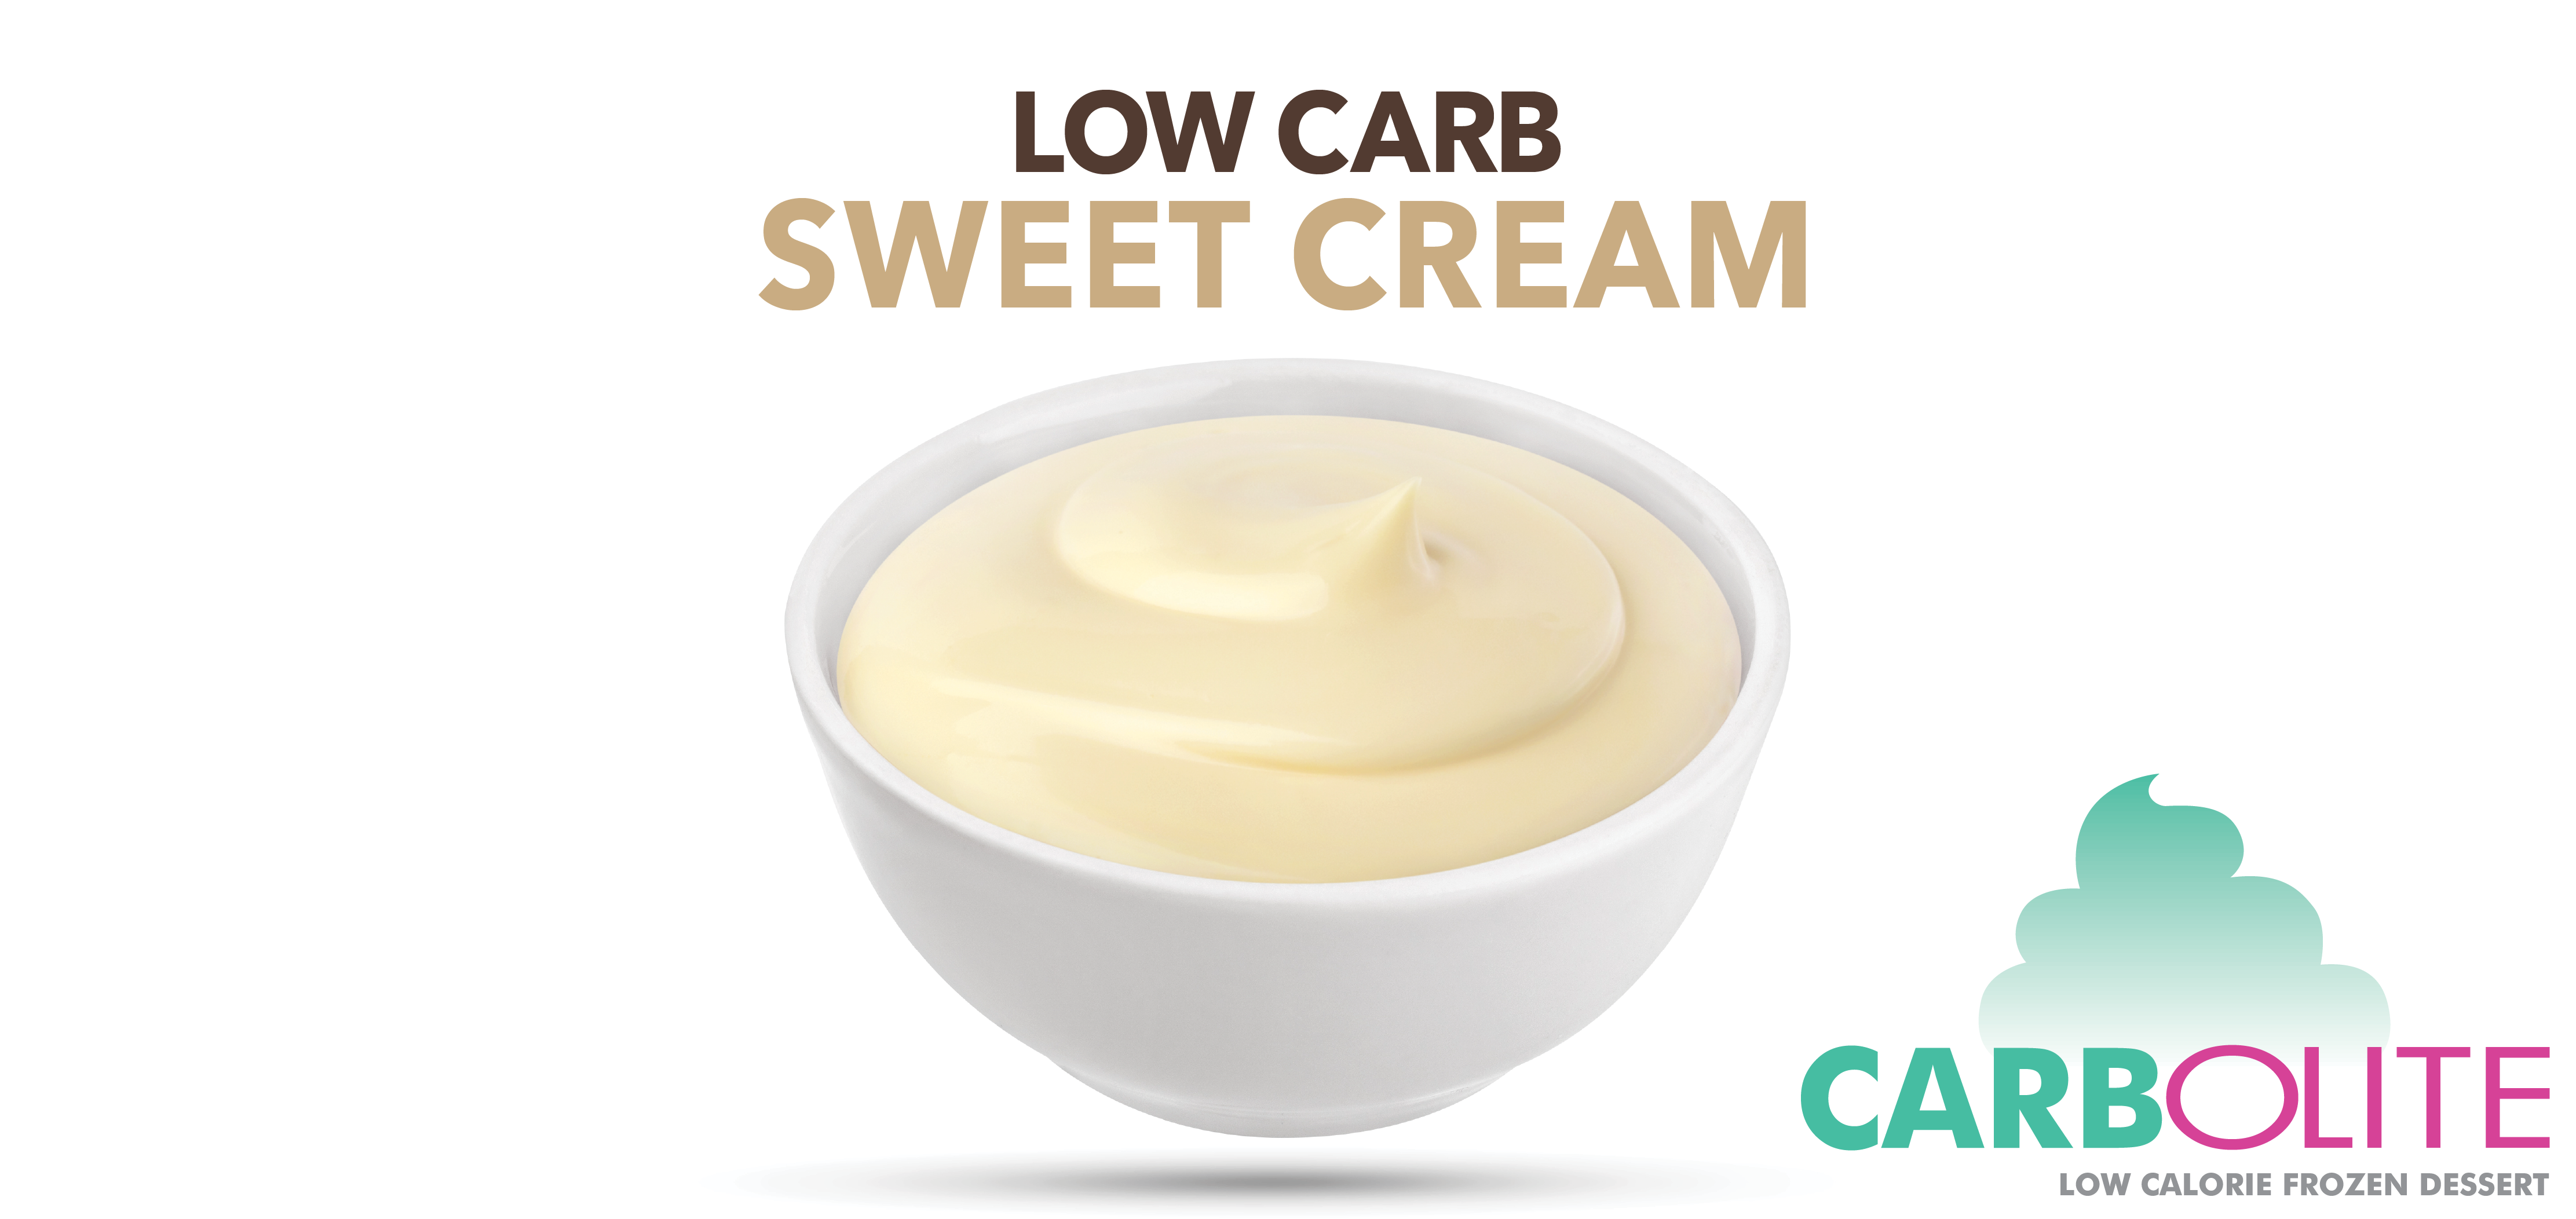 carbolite low carb no sugar added sweet cream label image